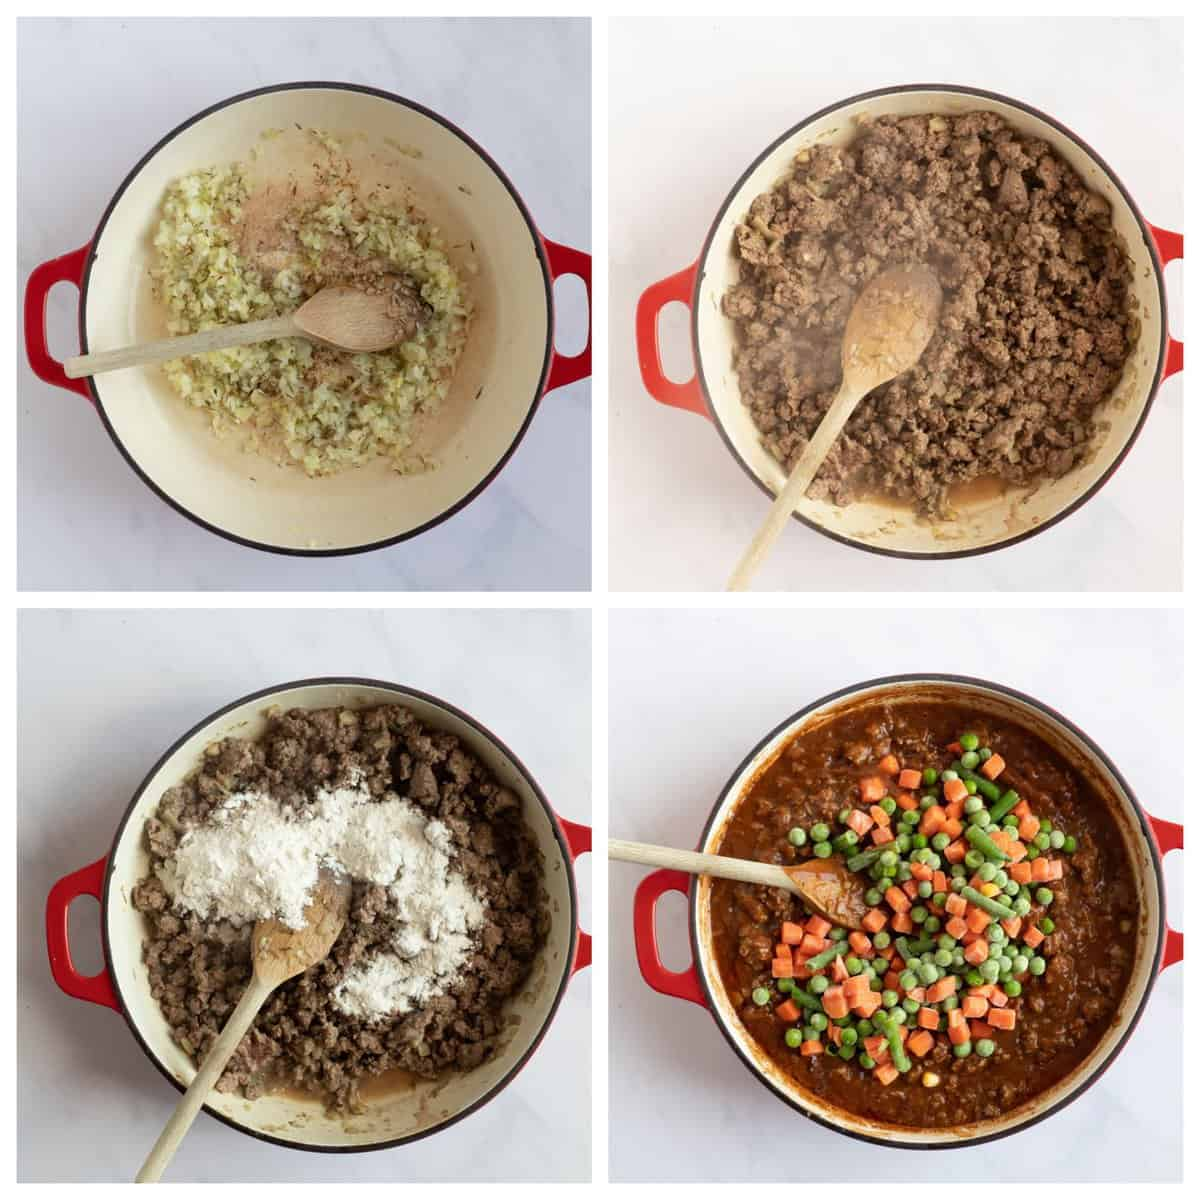 Step by step photo instructions for making savoury mince.